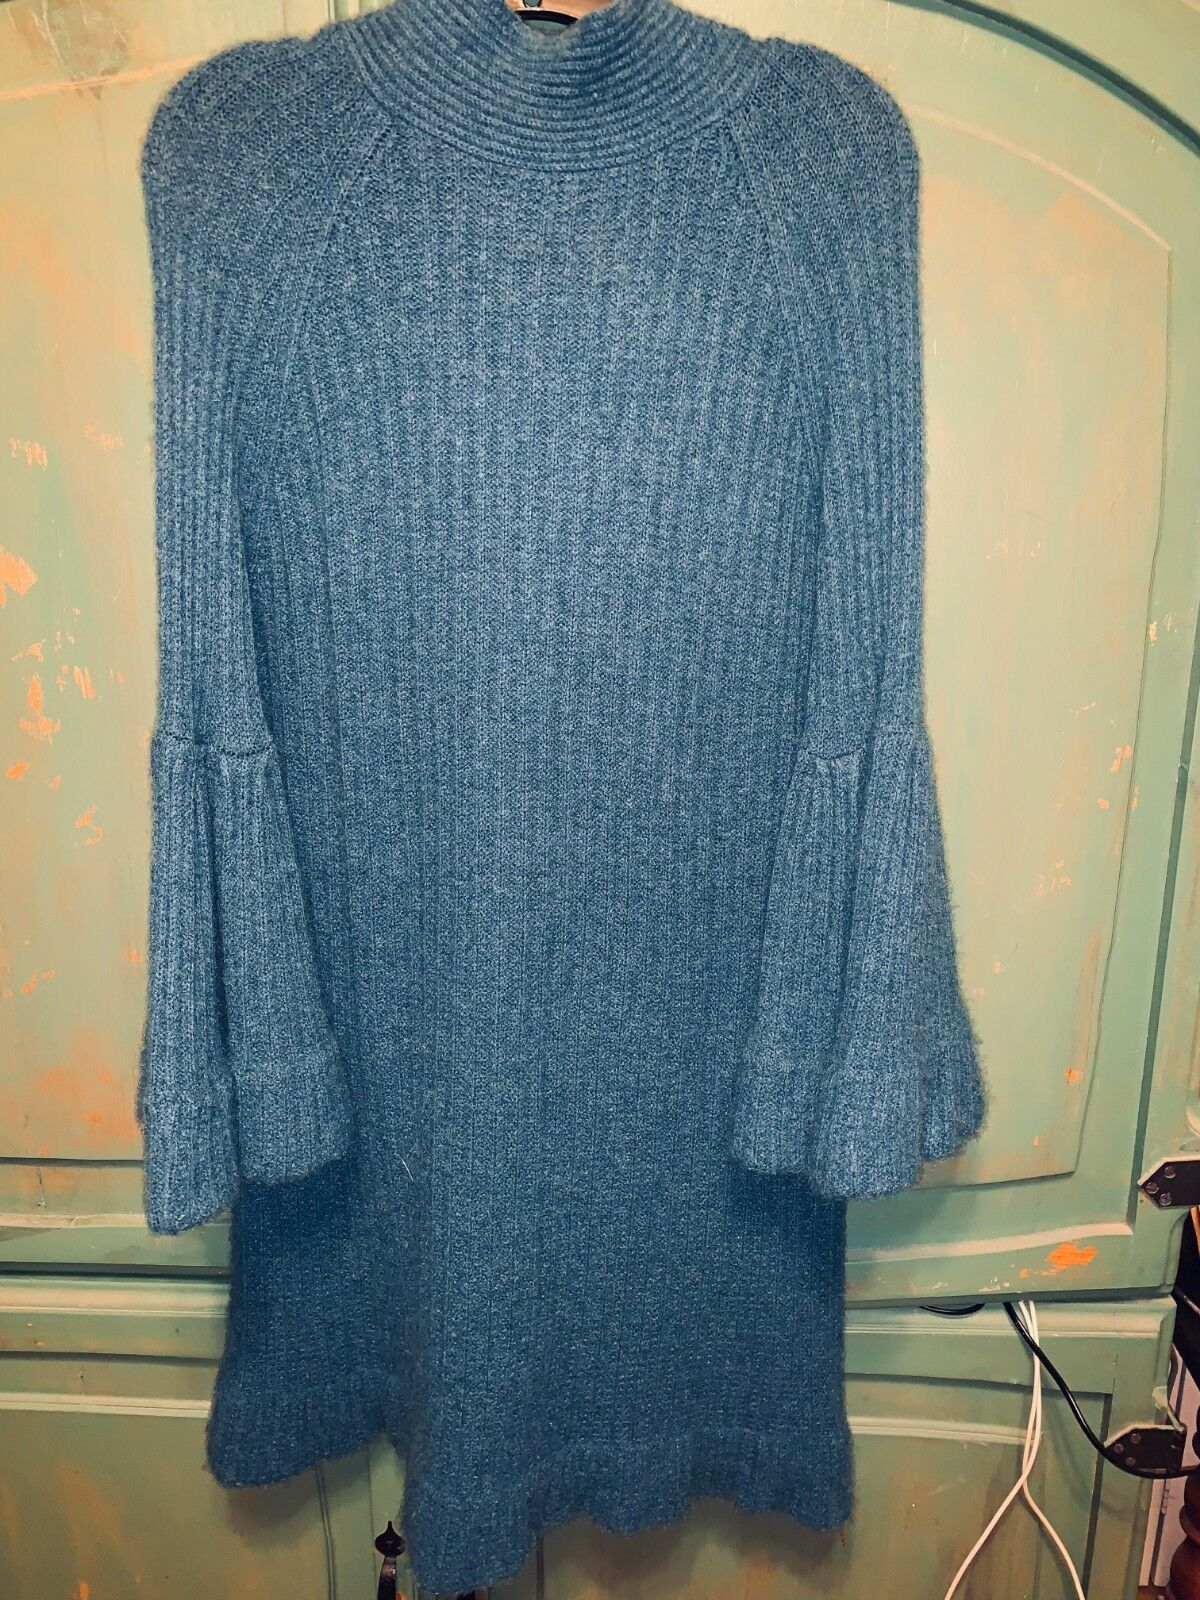 BCBGMAXAZRIA Teal Wool Blend Back Neck Tie Sweater Dress Top (Größe M)